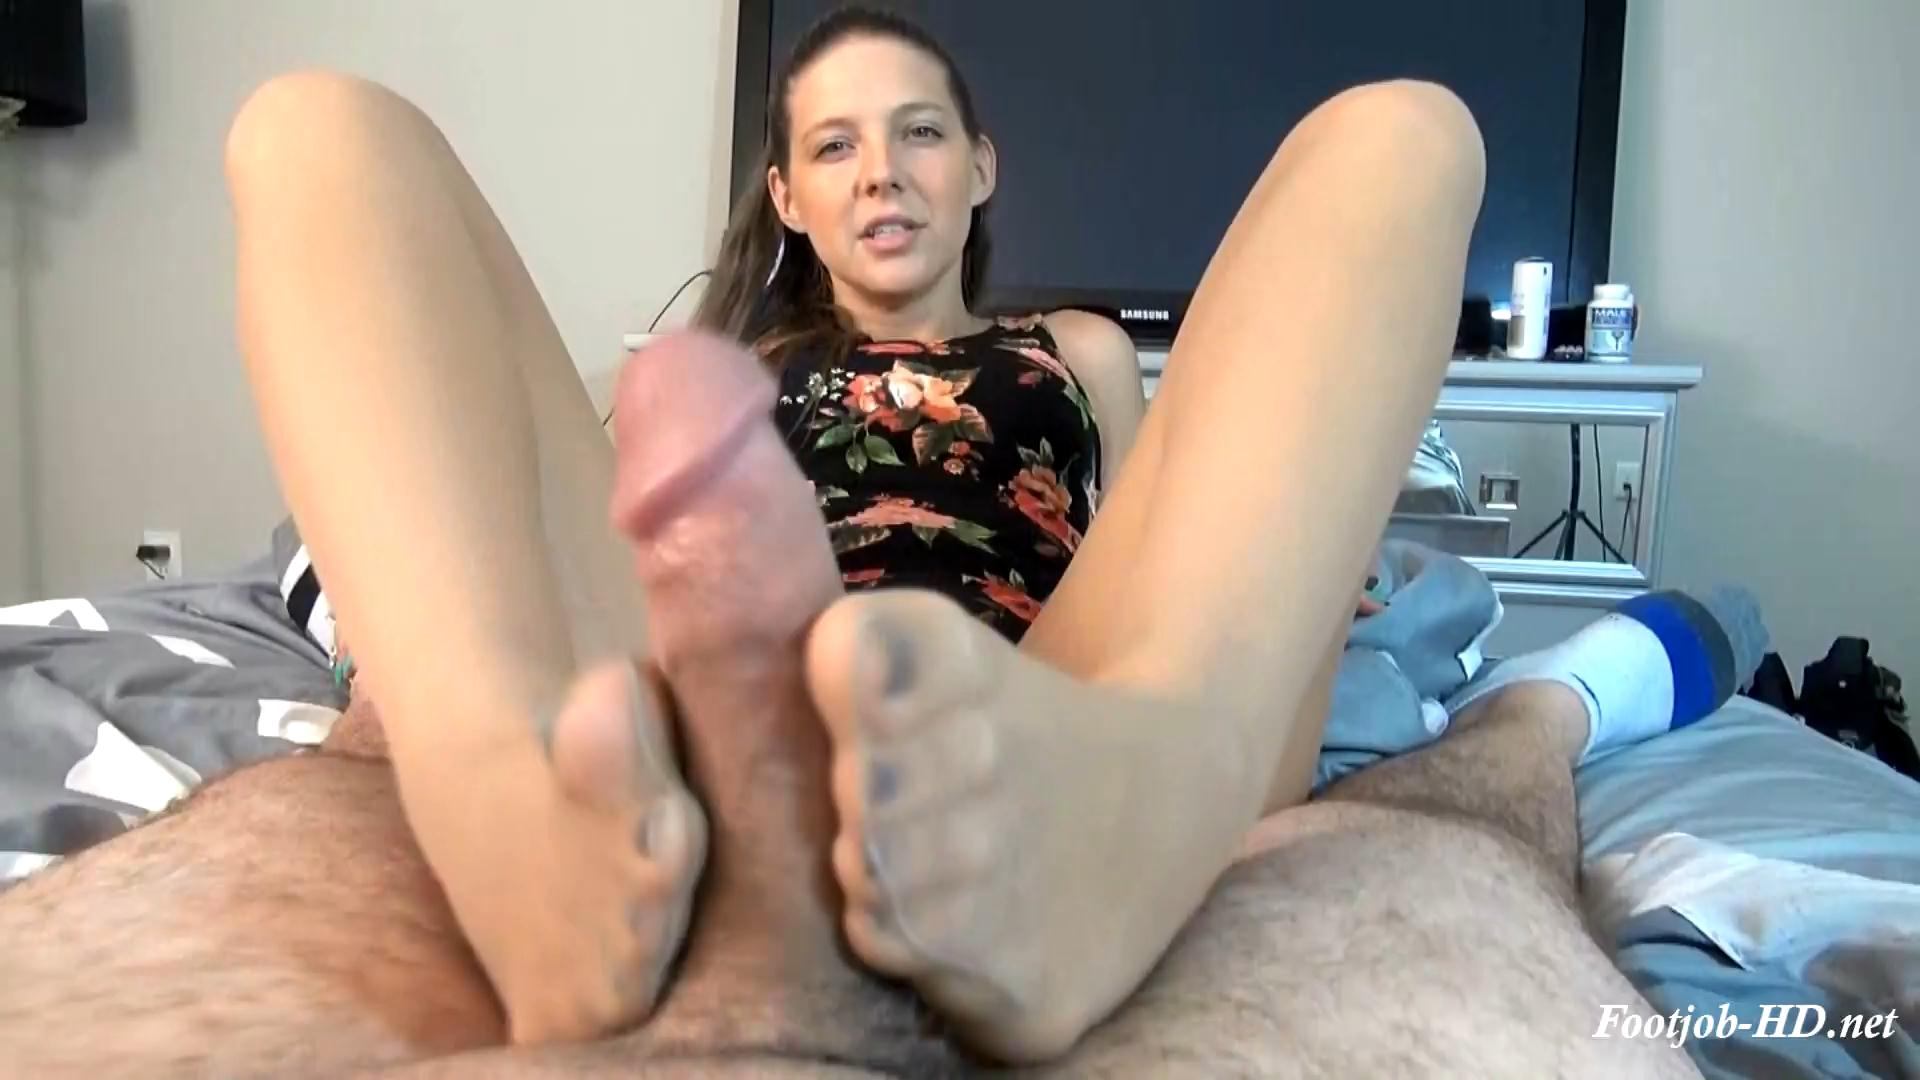 Sadie Holmes Wake Up Blowjob Footjob – Bratty Babes Own You